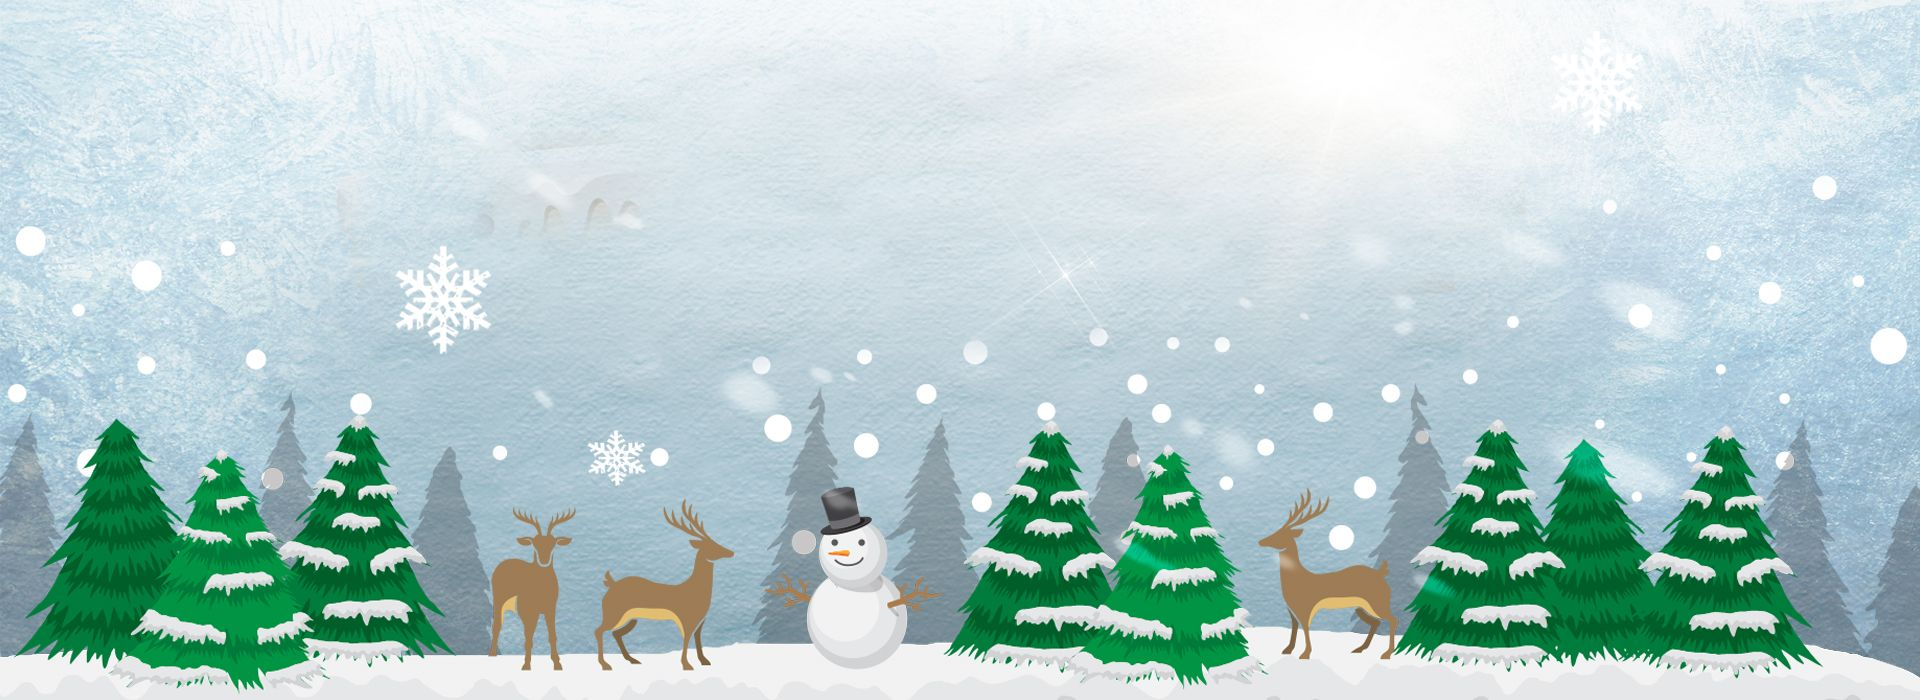 Christmas Snow Winter Cartoon Background Snowman Christmas Tree Winter Cards Cartoon Background